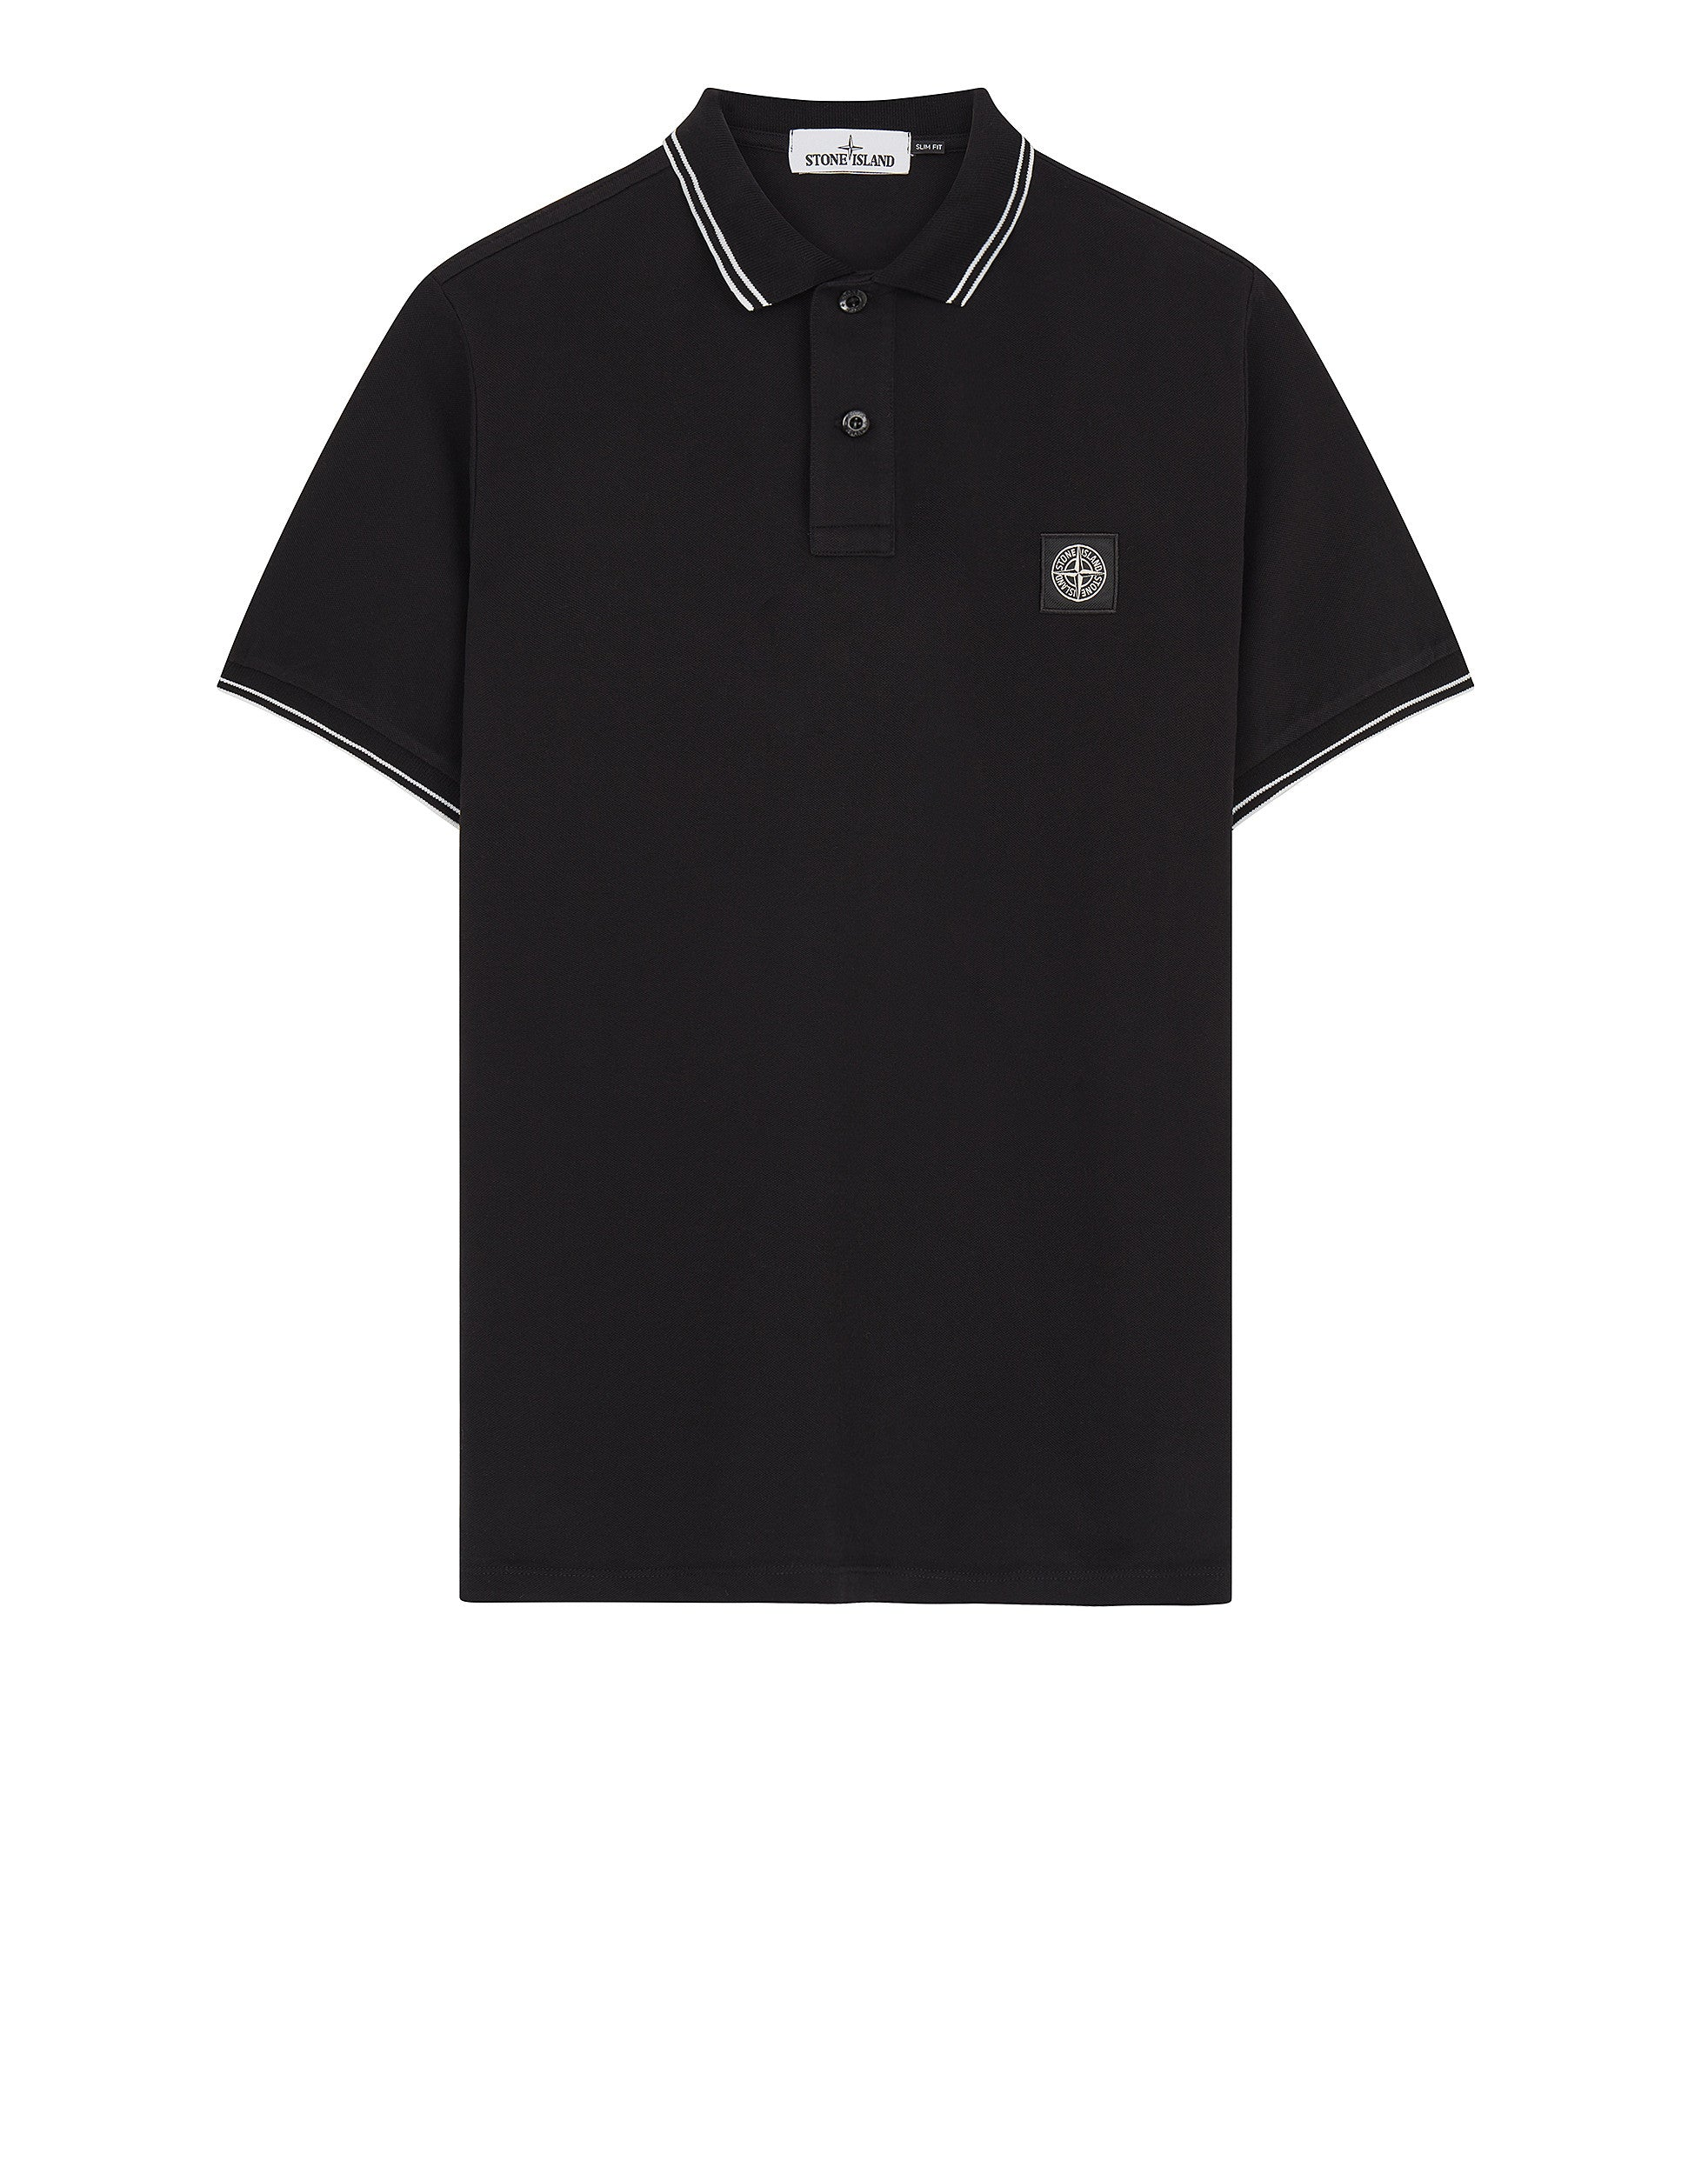 22S18 Polo Shirt in Black